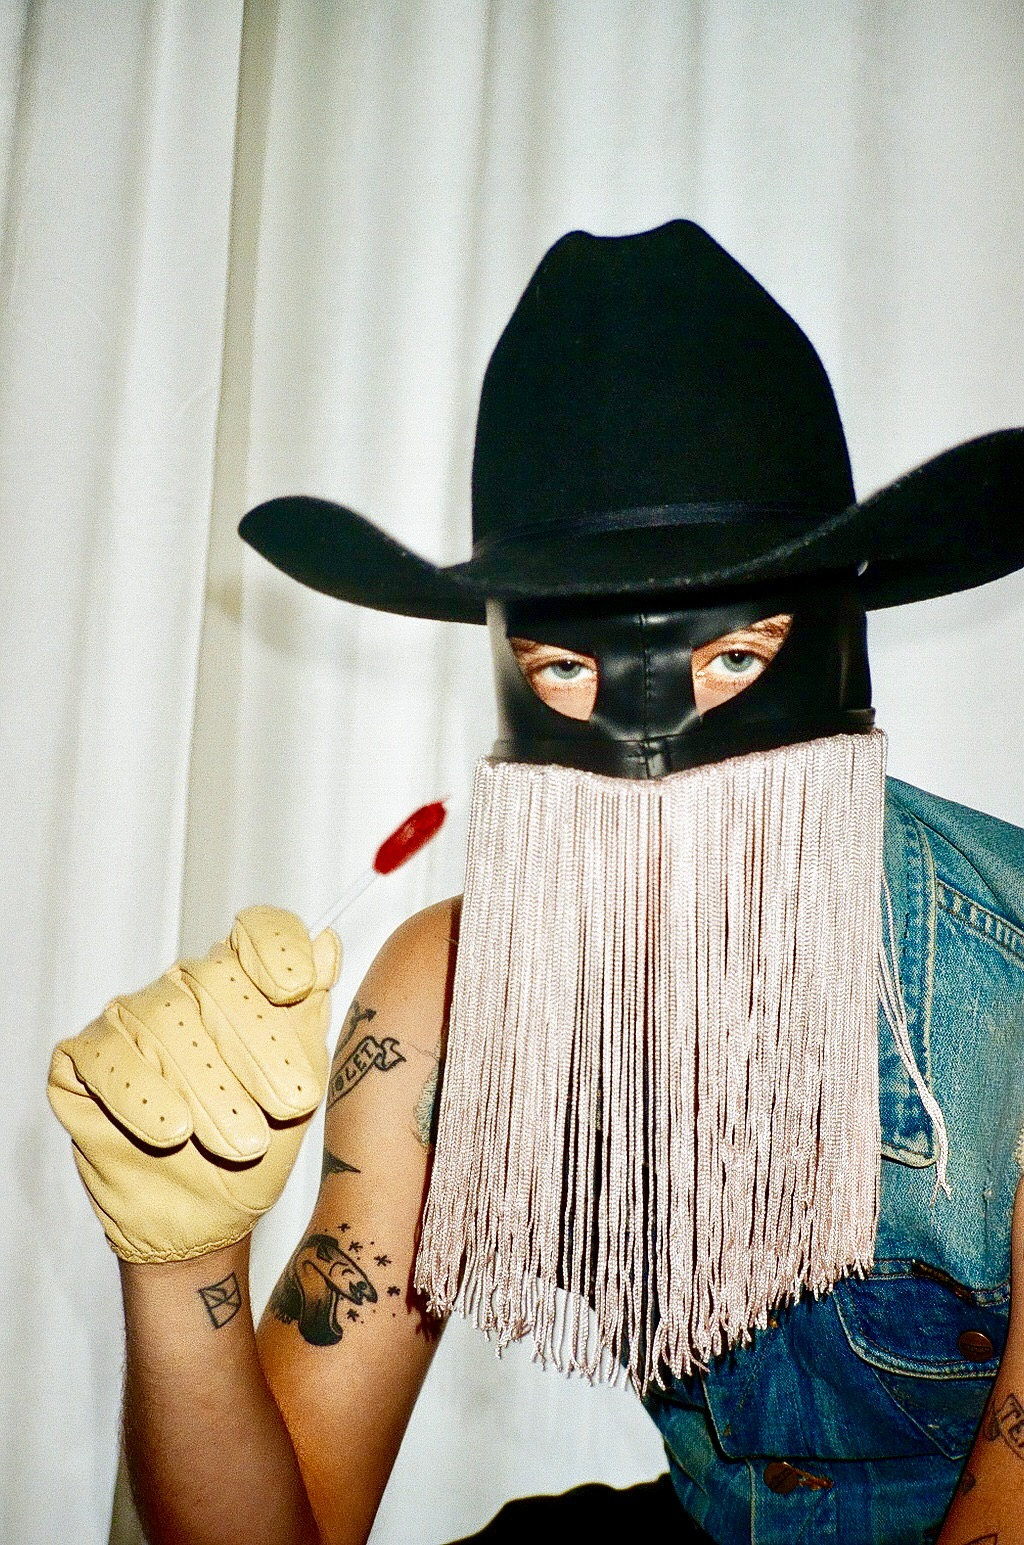 Introducing masked outlaw crooner Orville Peck | W